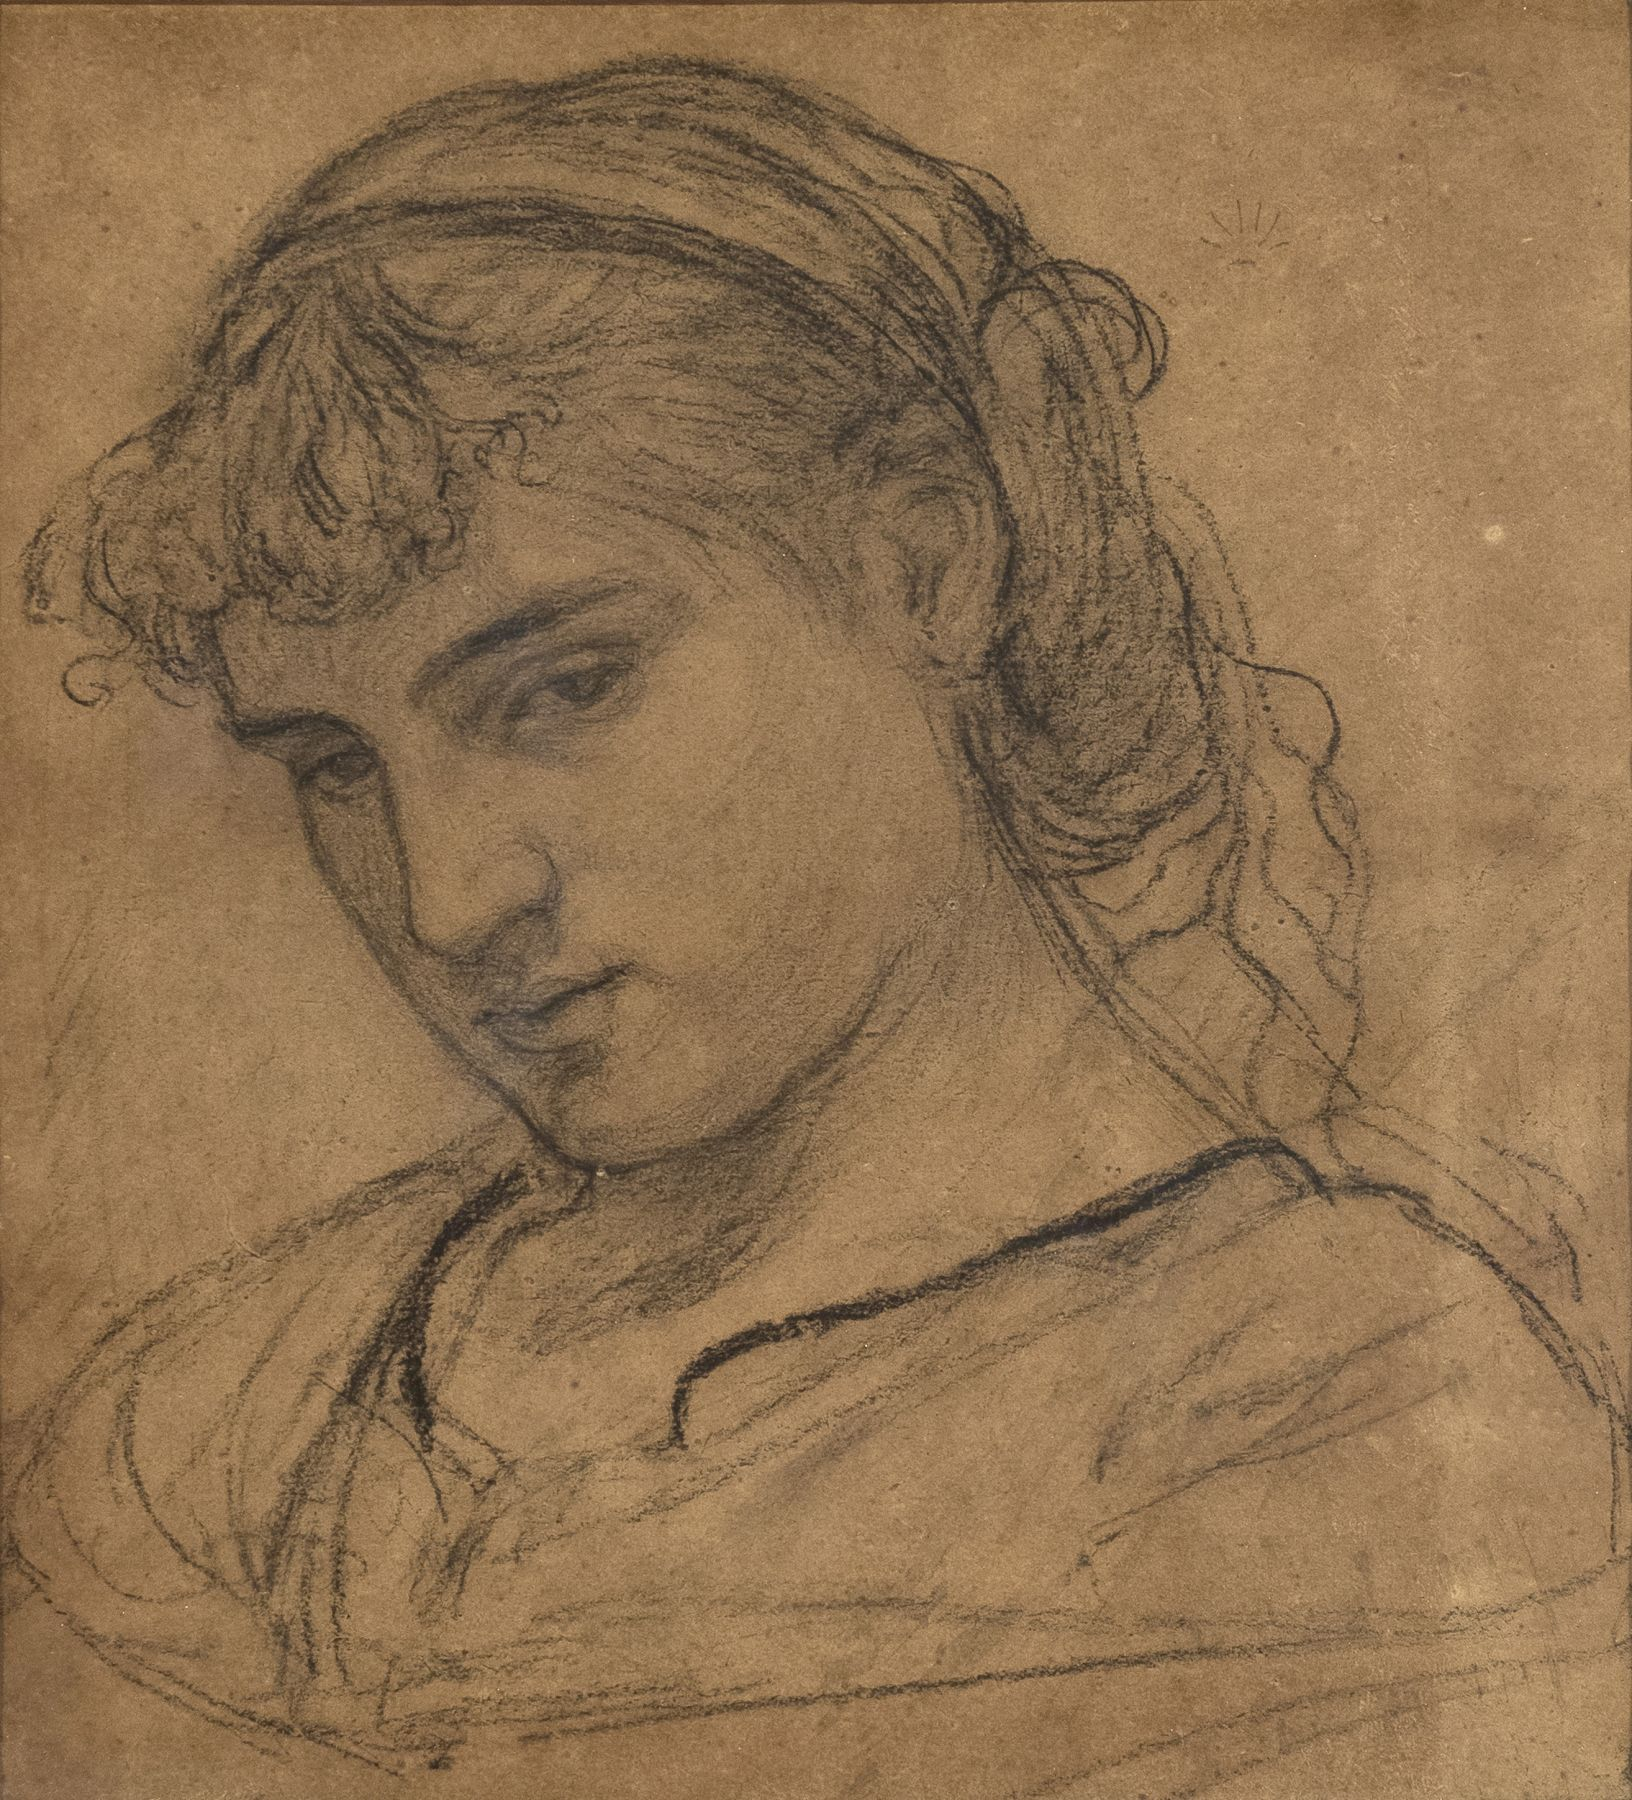 Albert Joseph Moore, Portrait of a Girl, Charcoal on brown paper 13 1/2 x 14 1/2 inches